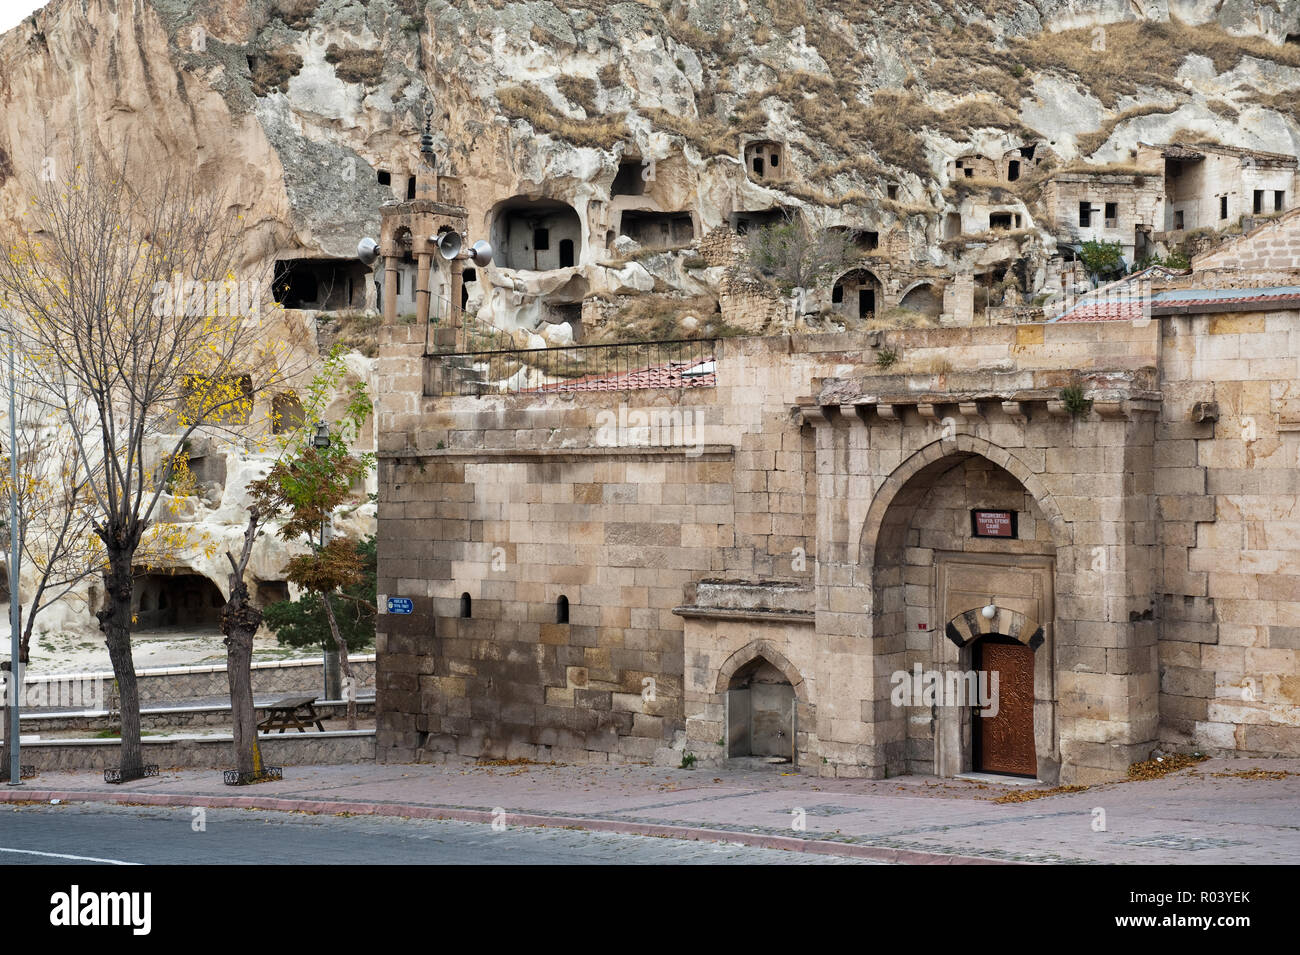 'Building by cave dwellings in Urgup, Turkey' - Stock Image